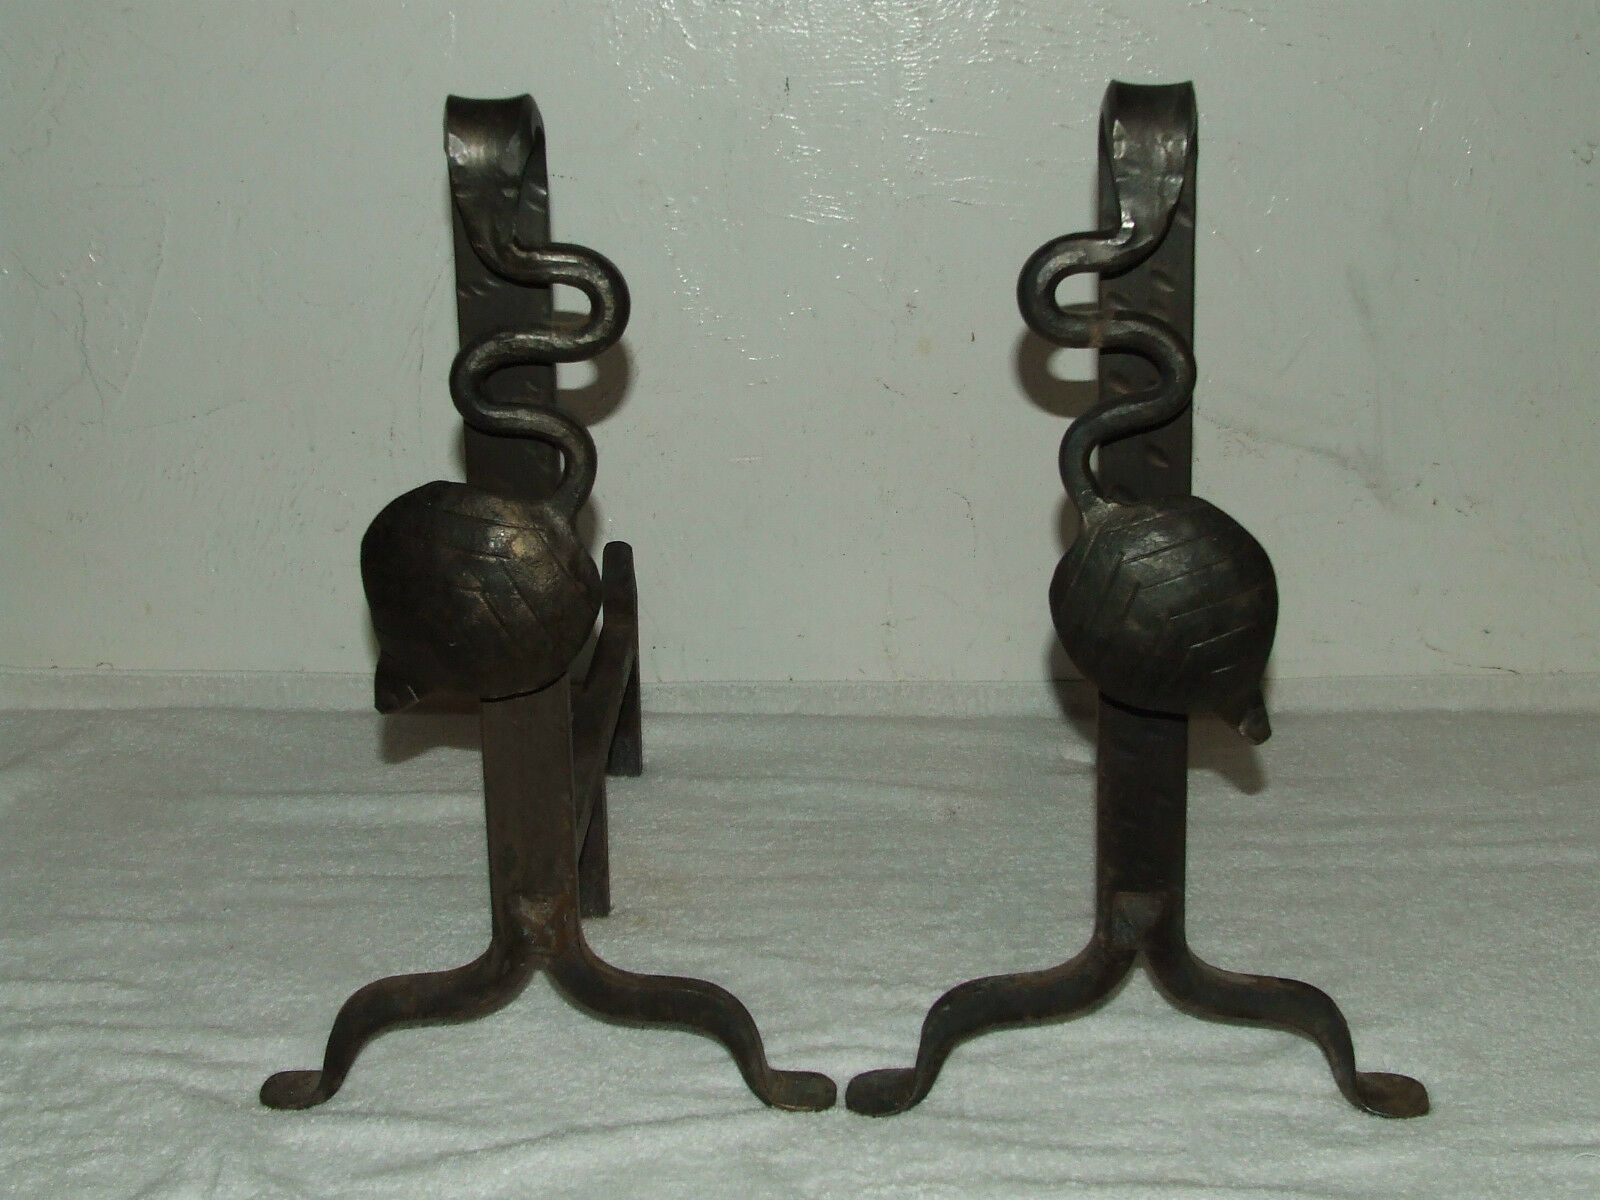 Antique 19th C. Hand Forged Cast Iron Victorian Art Nouveau Fireplace Andirons